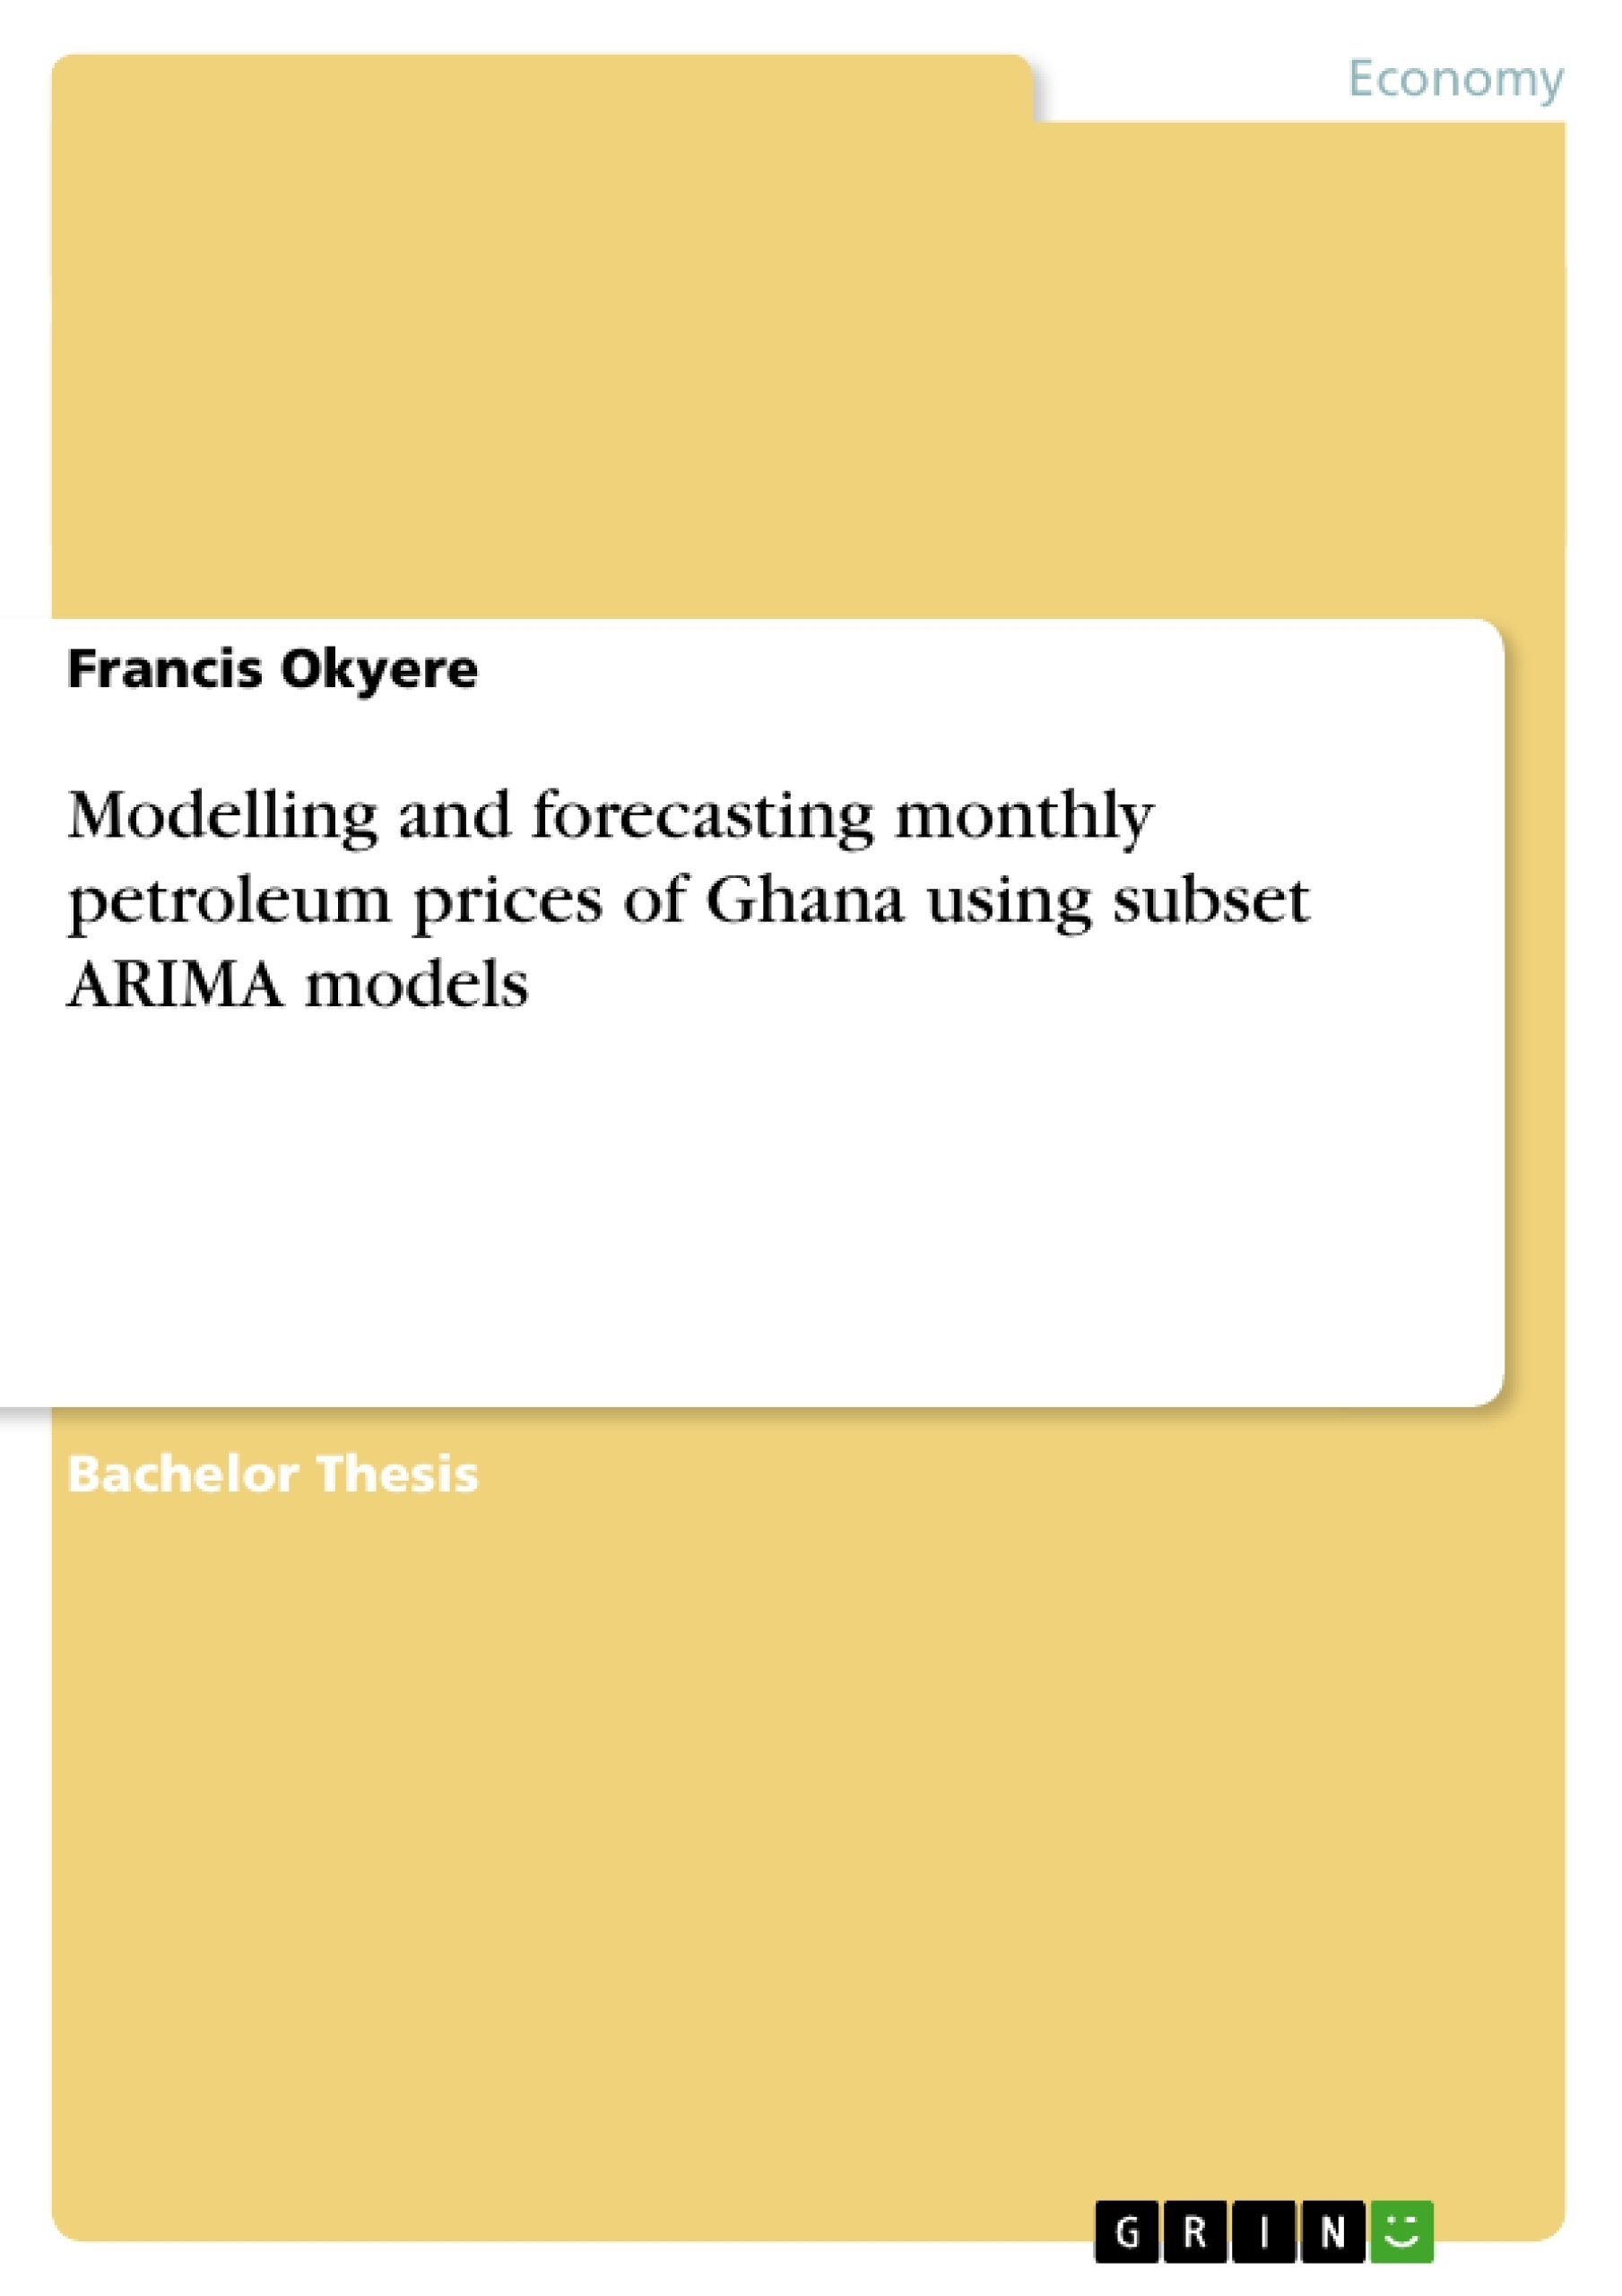 Title: Modelling and forecasting monthly petroleum prices of Ghana using subset ARIMA models